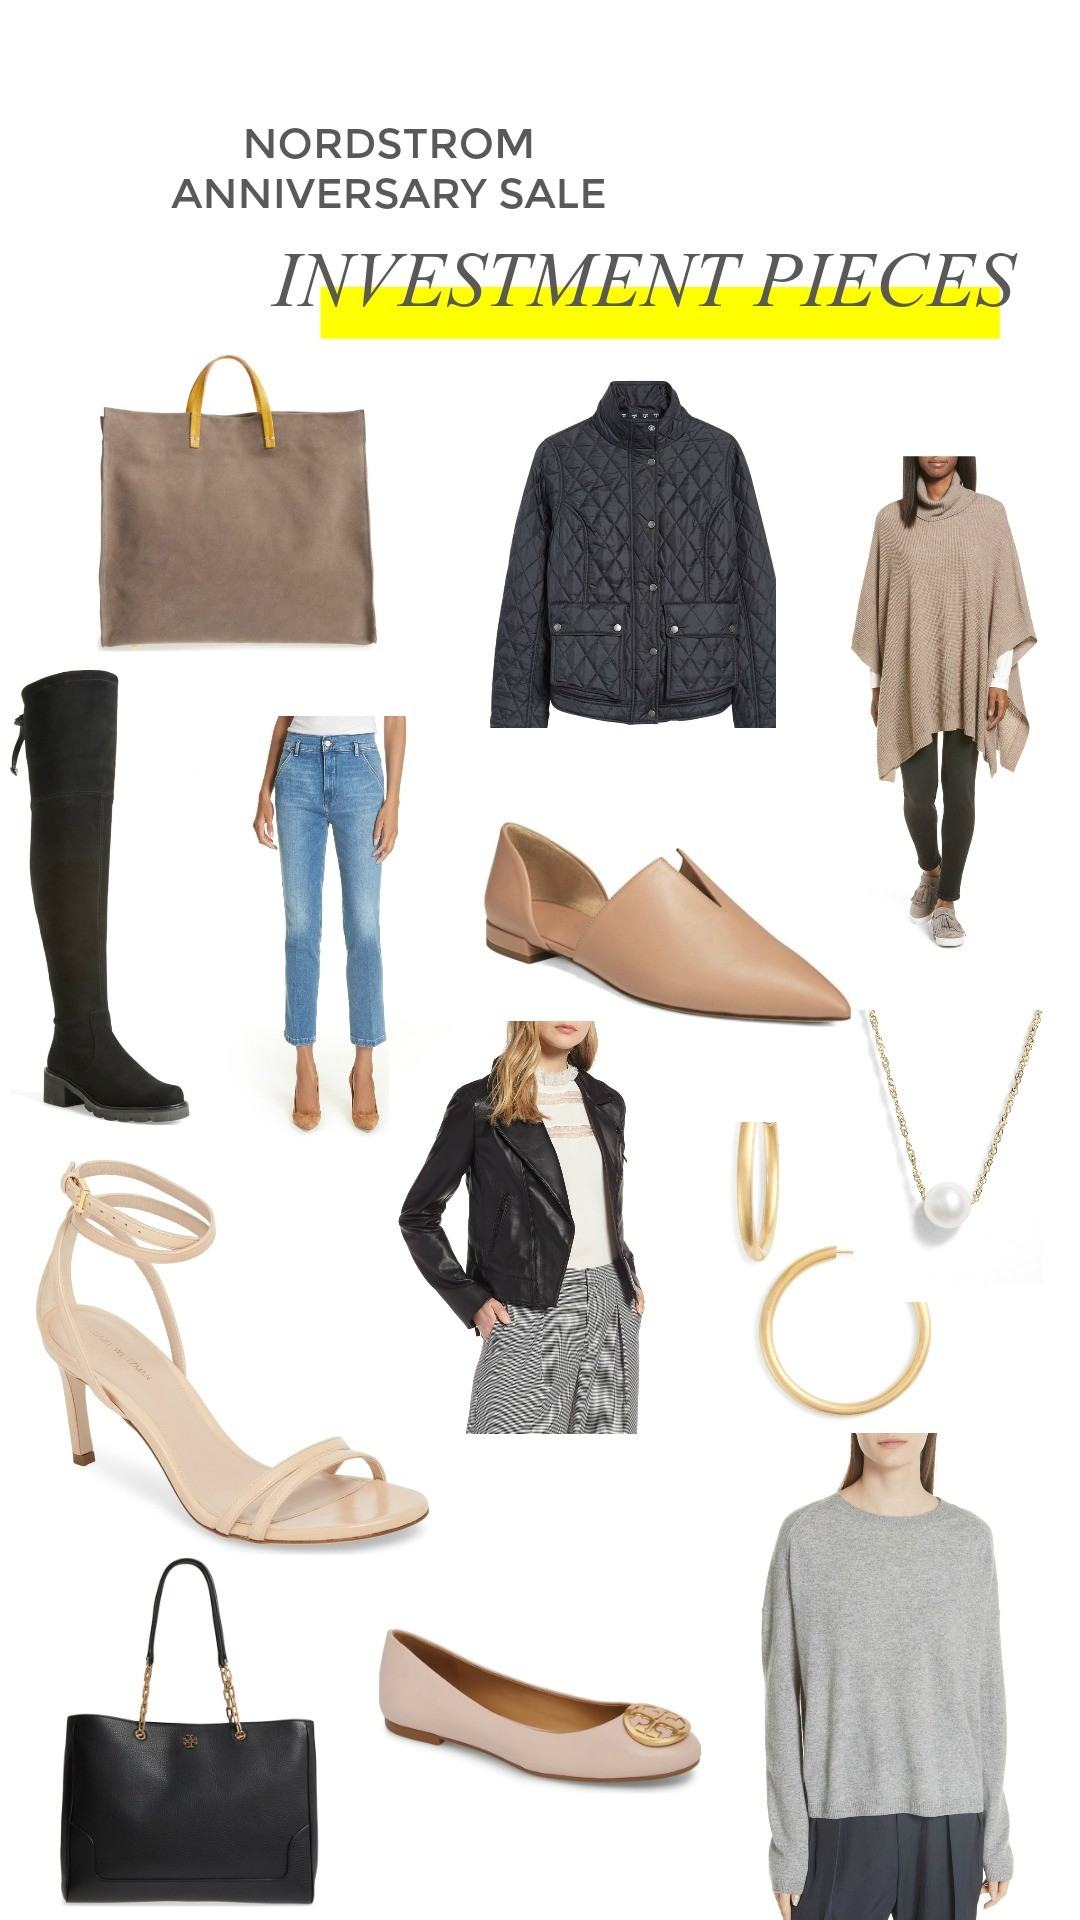 b586158b24090 The Nordstrom Anniversary Sale For The Non-Cardholder - Word2thabyrd